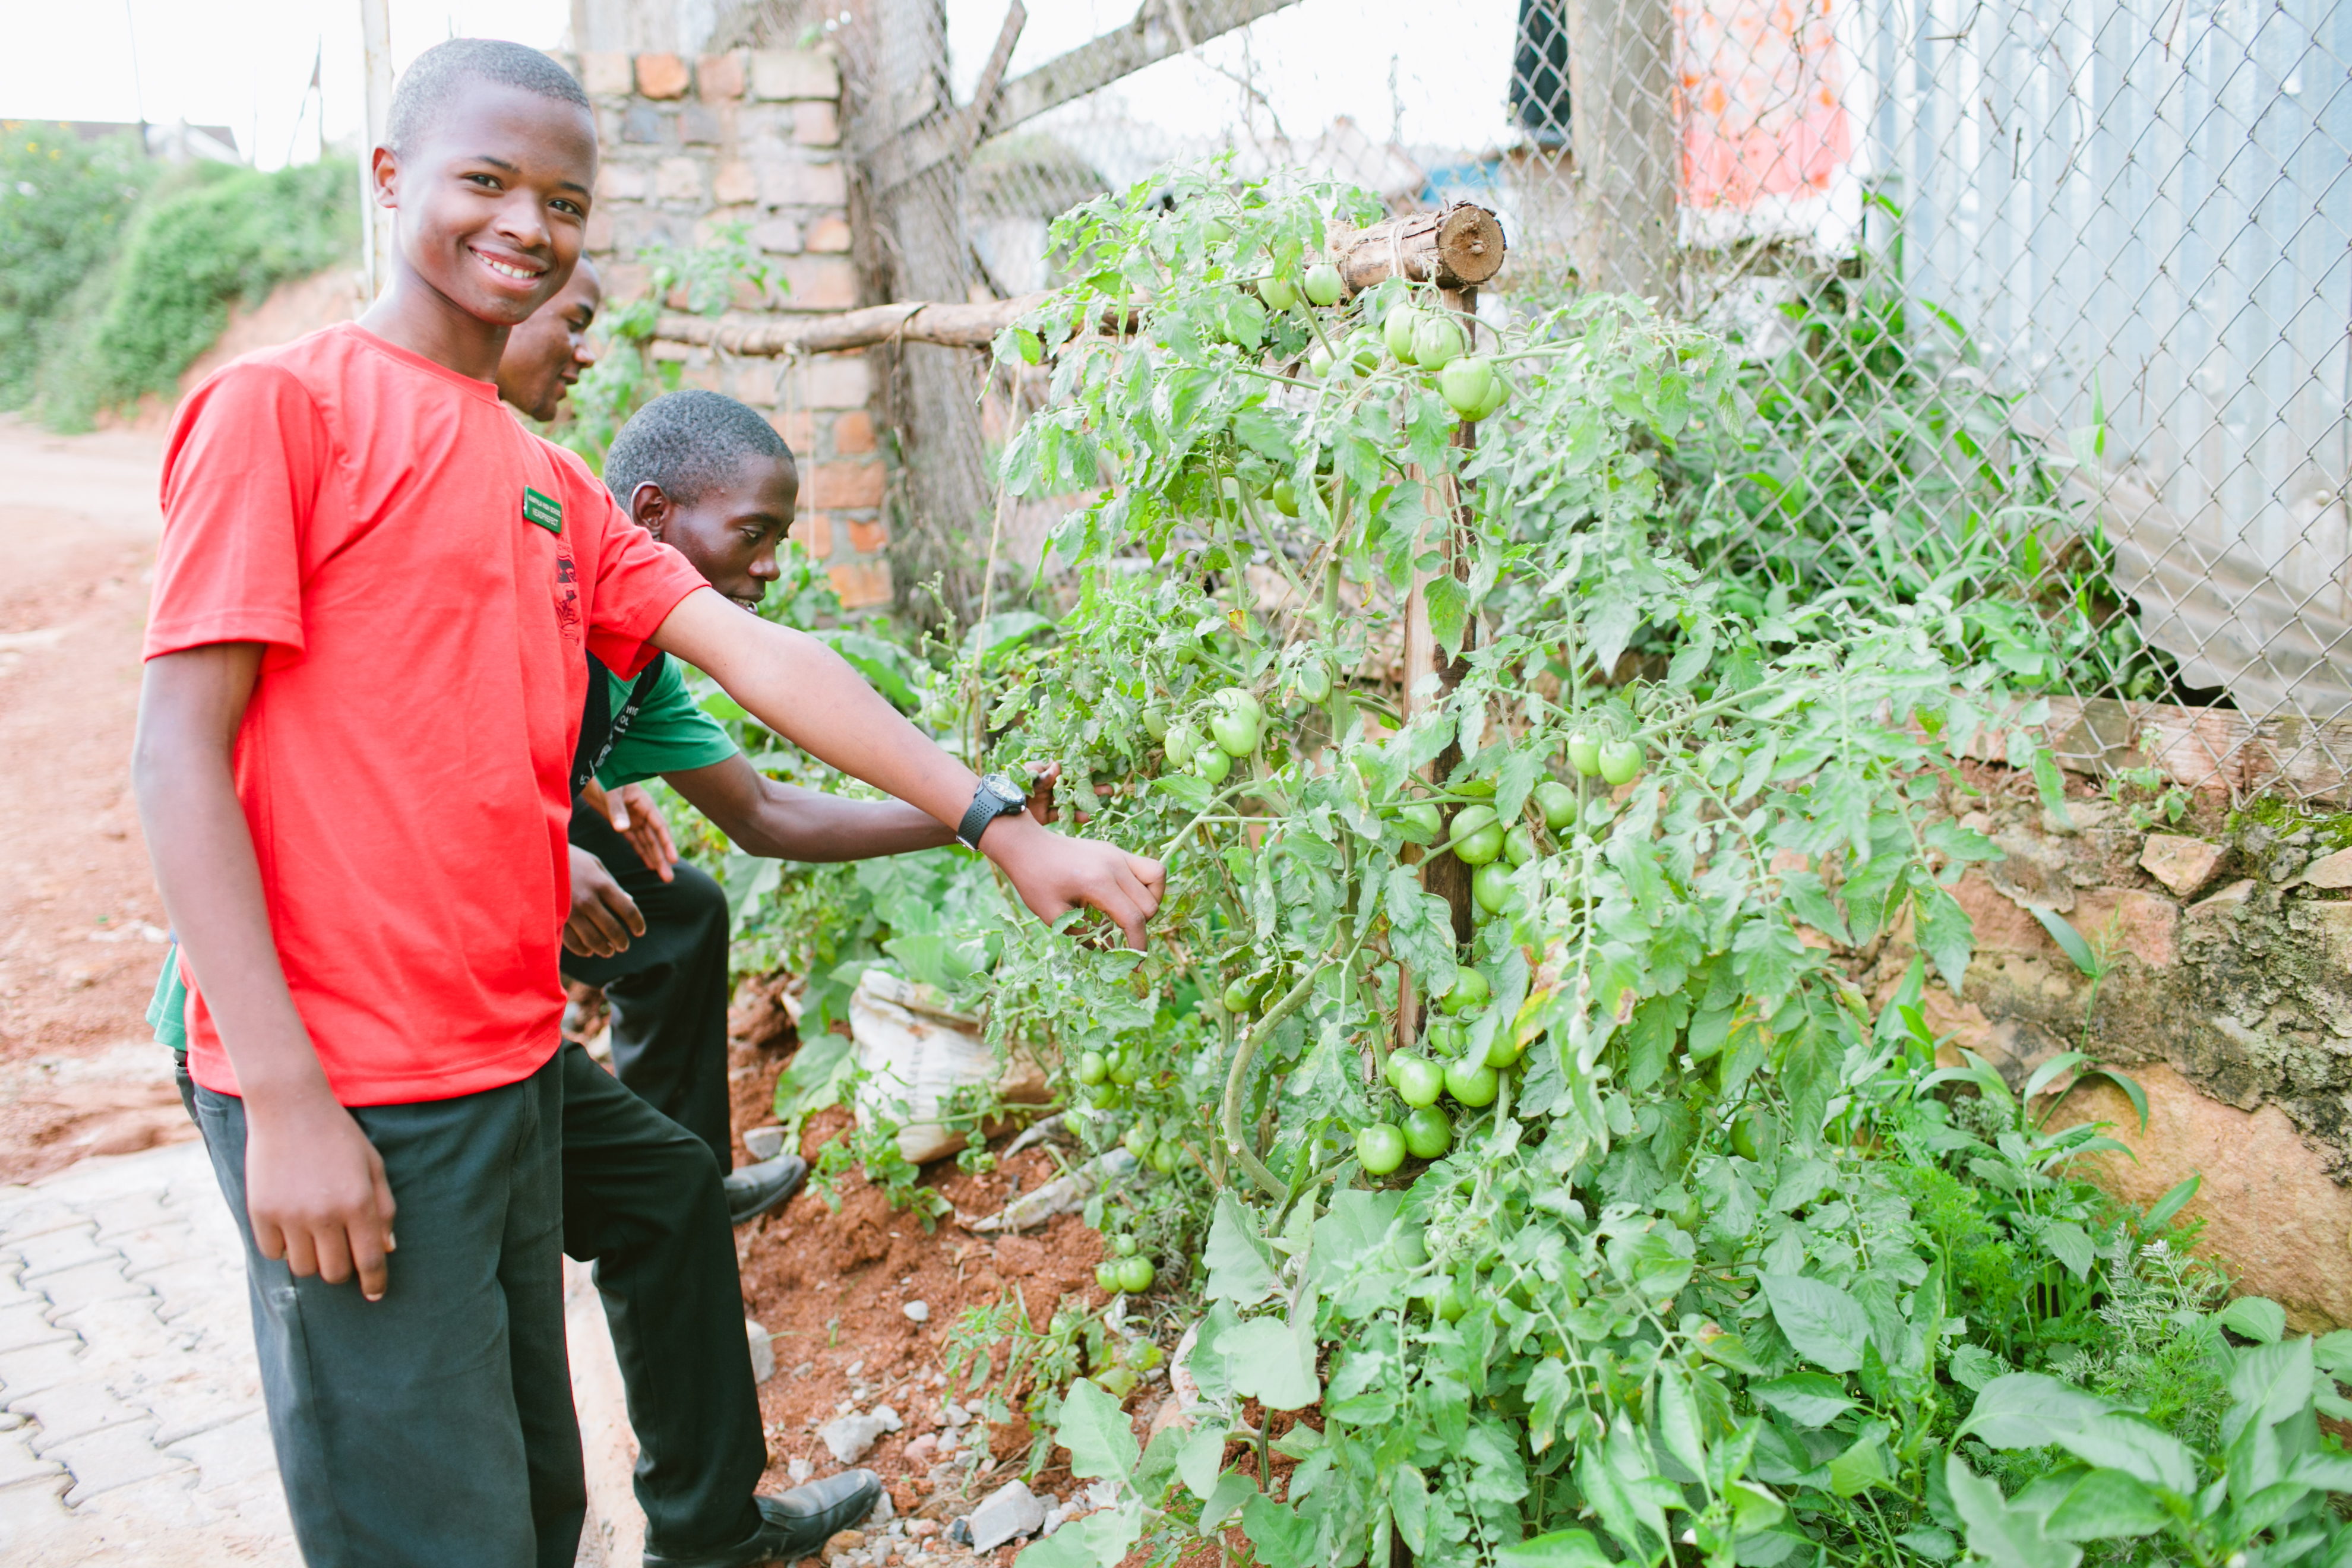 Student at Kampala High School shows Student Business Club garden project . Photo by Ashley Turner for Educate!